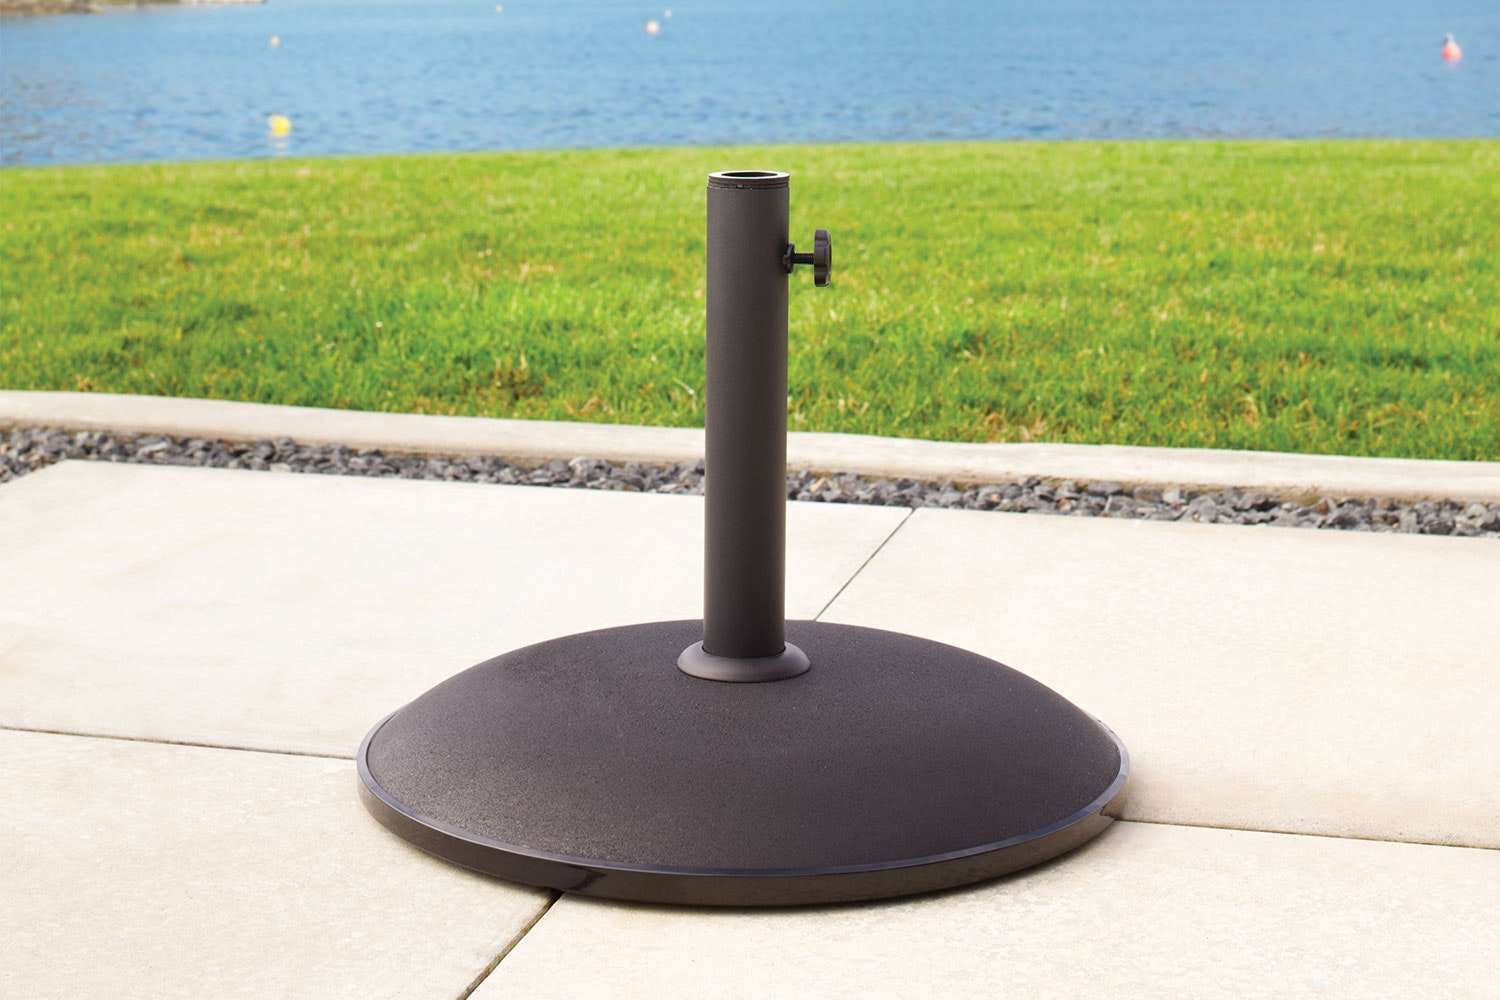 15kg Black Concrete Umbrella Base by Peros